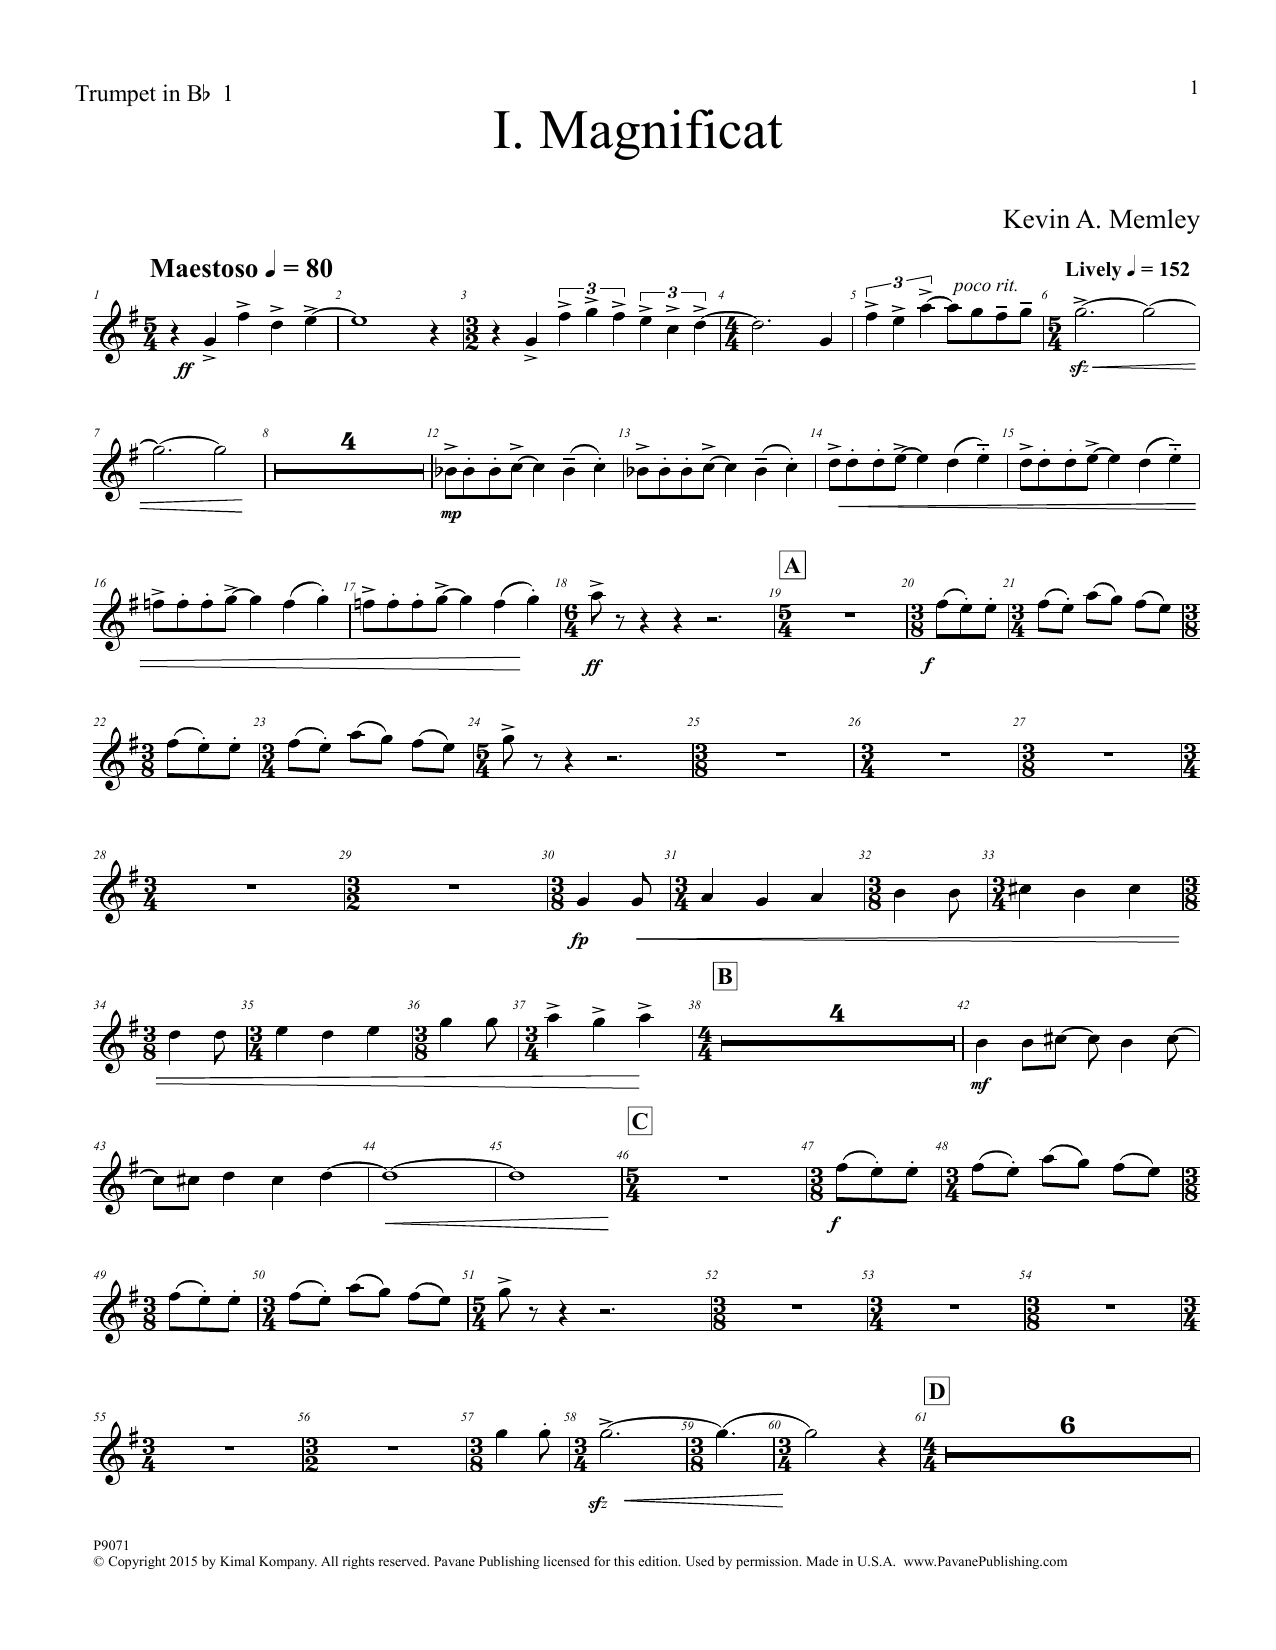 Magnificat (Full Orchestra) (Parts) - Trumpet 1 in Bb Sheet Music